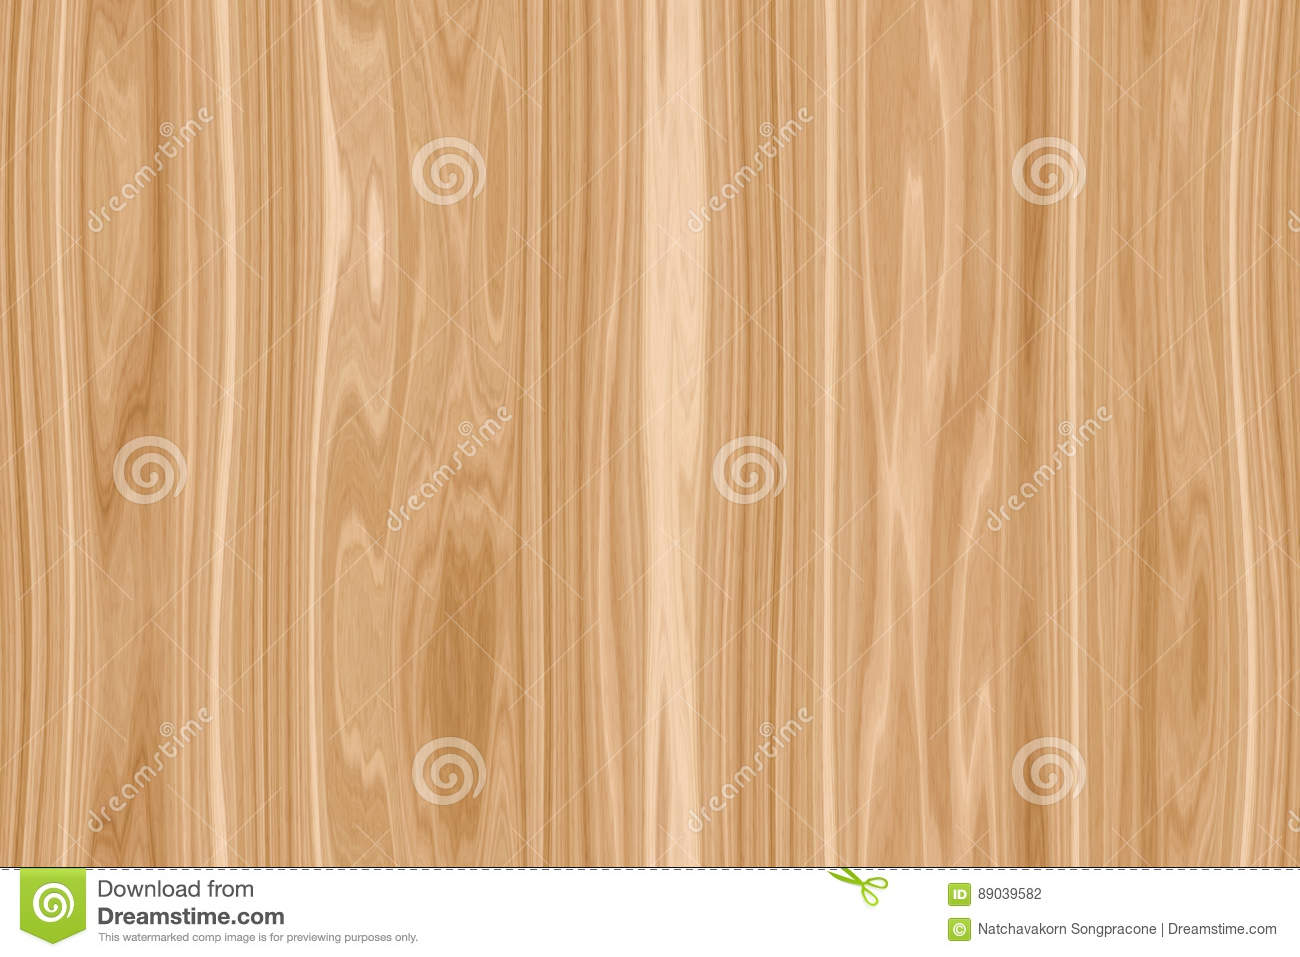 Download Seamless Brown Wood Pallet Texture Illustration Stock